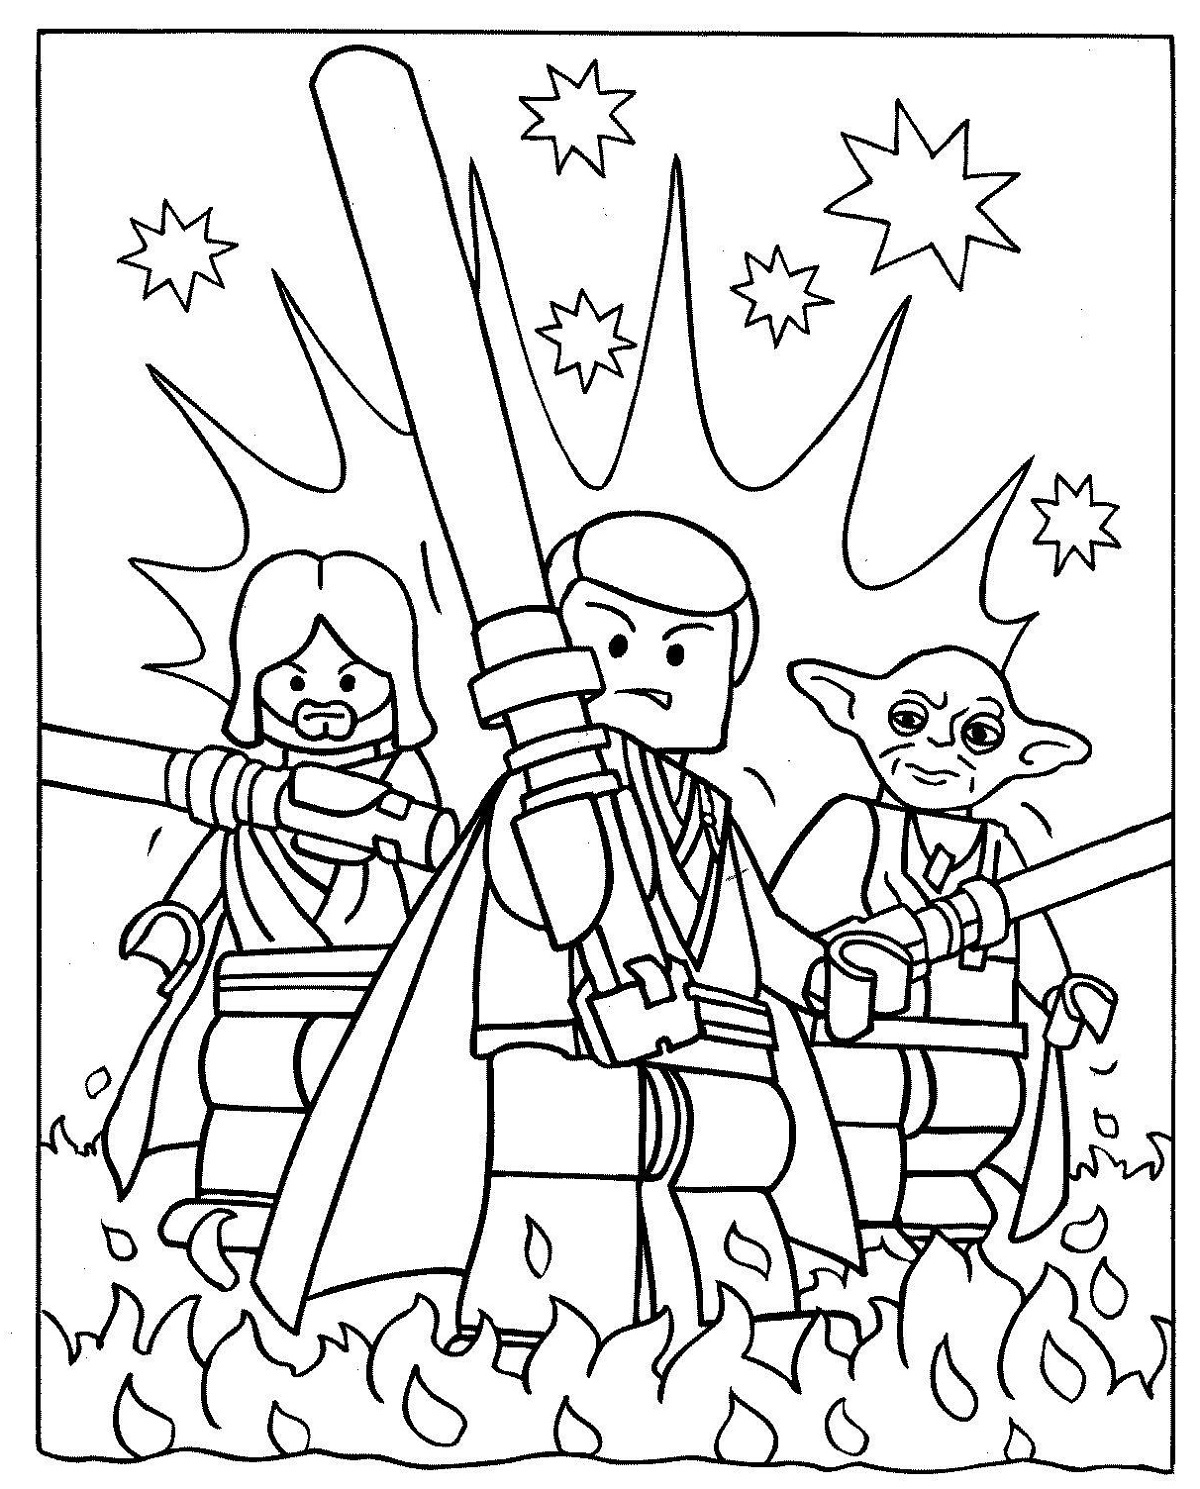 lego star wars printables lego star wars coloring pages free timeless miraclecom printables star wars lego